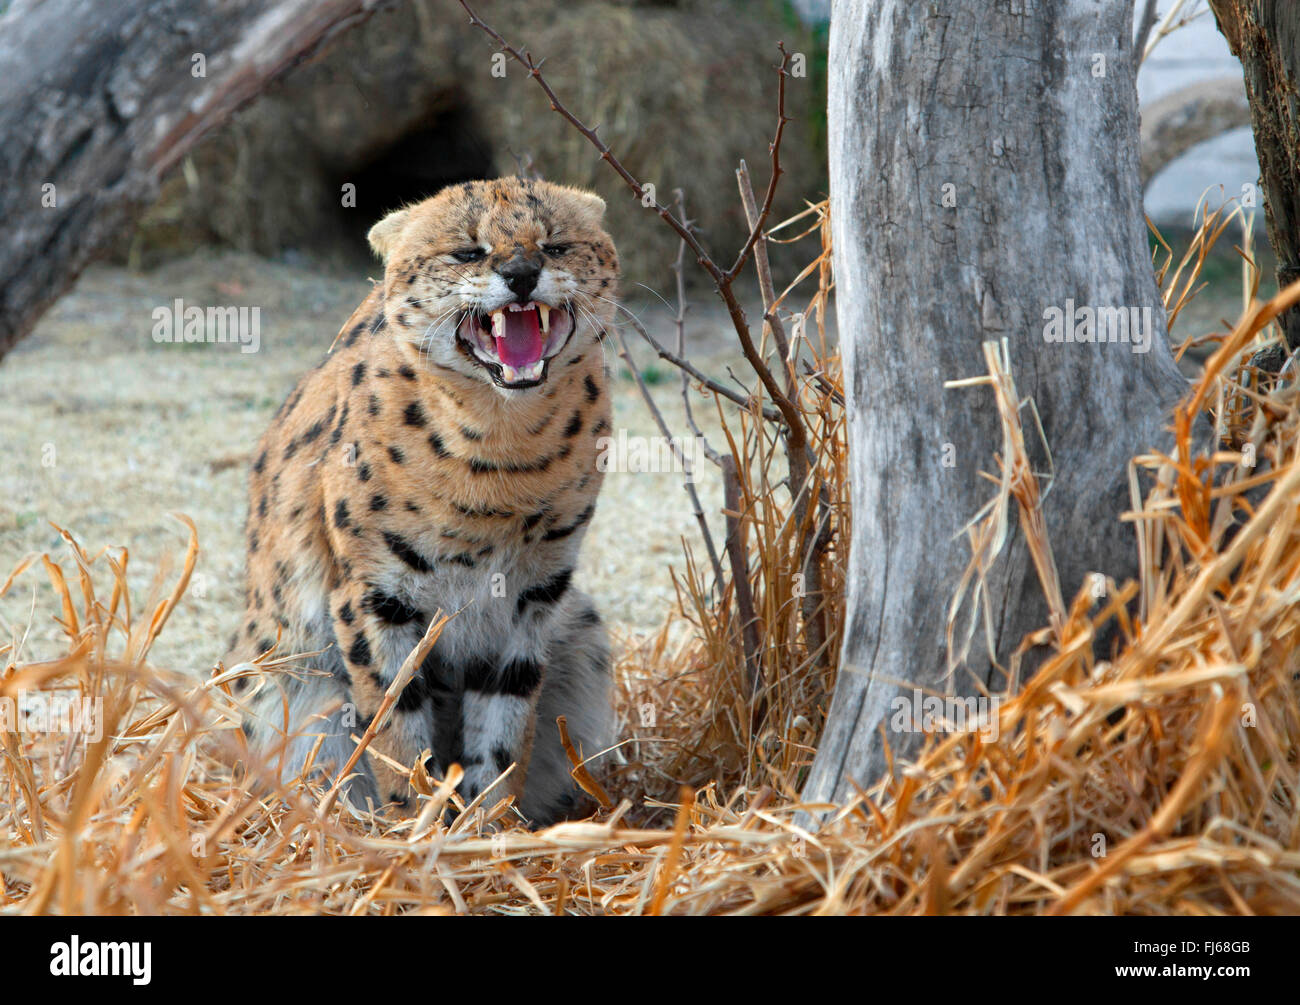 serval (Leptailurus serval, Felis serval), sitting on the ground at a dead tree and snarling, South Africa - Stock Image